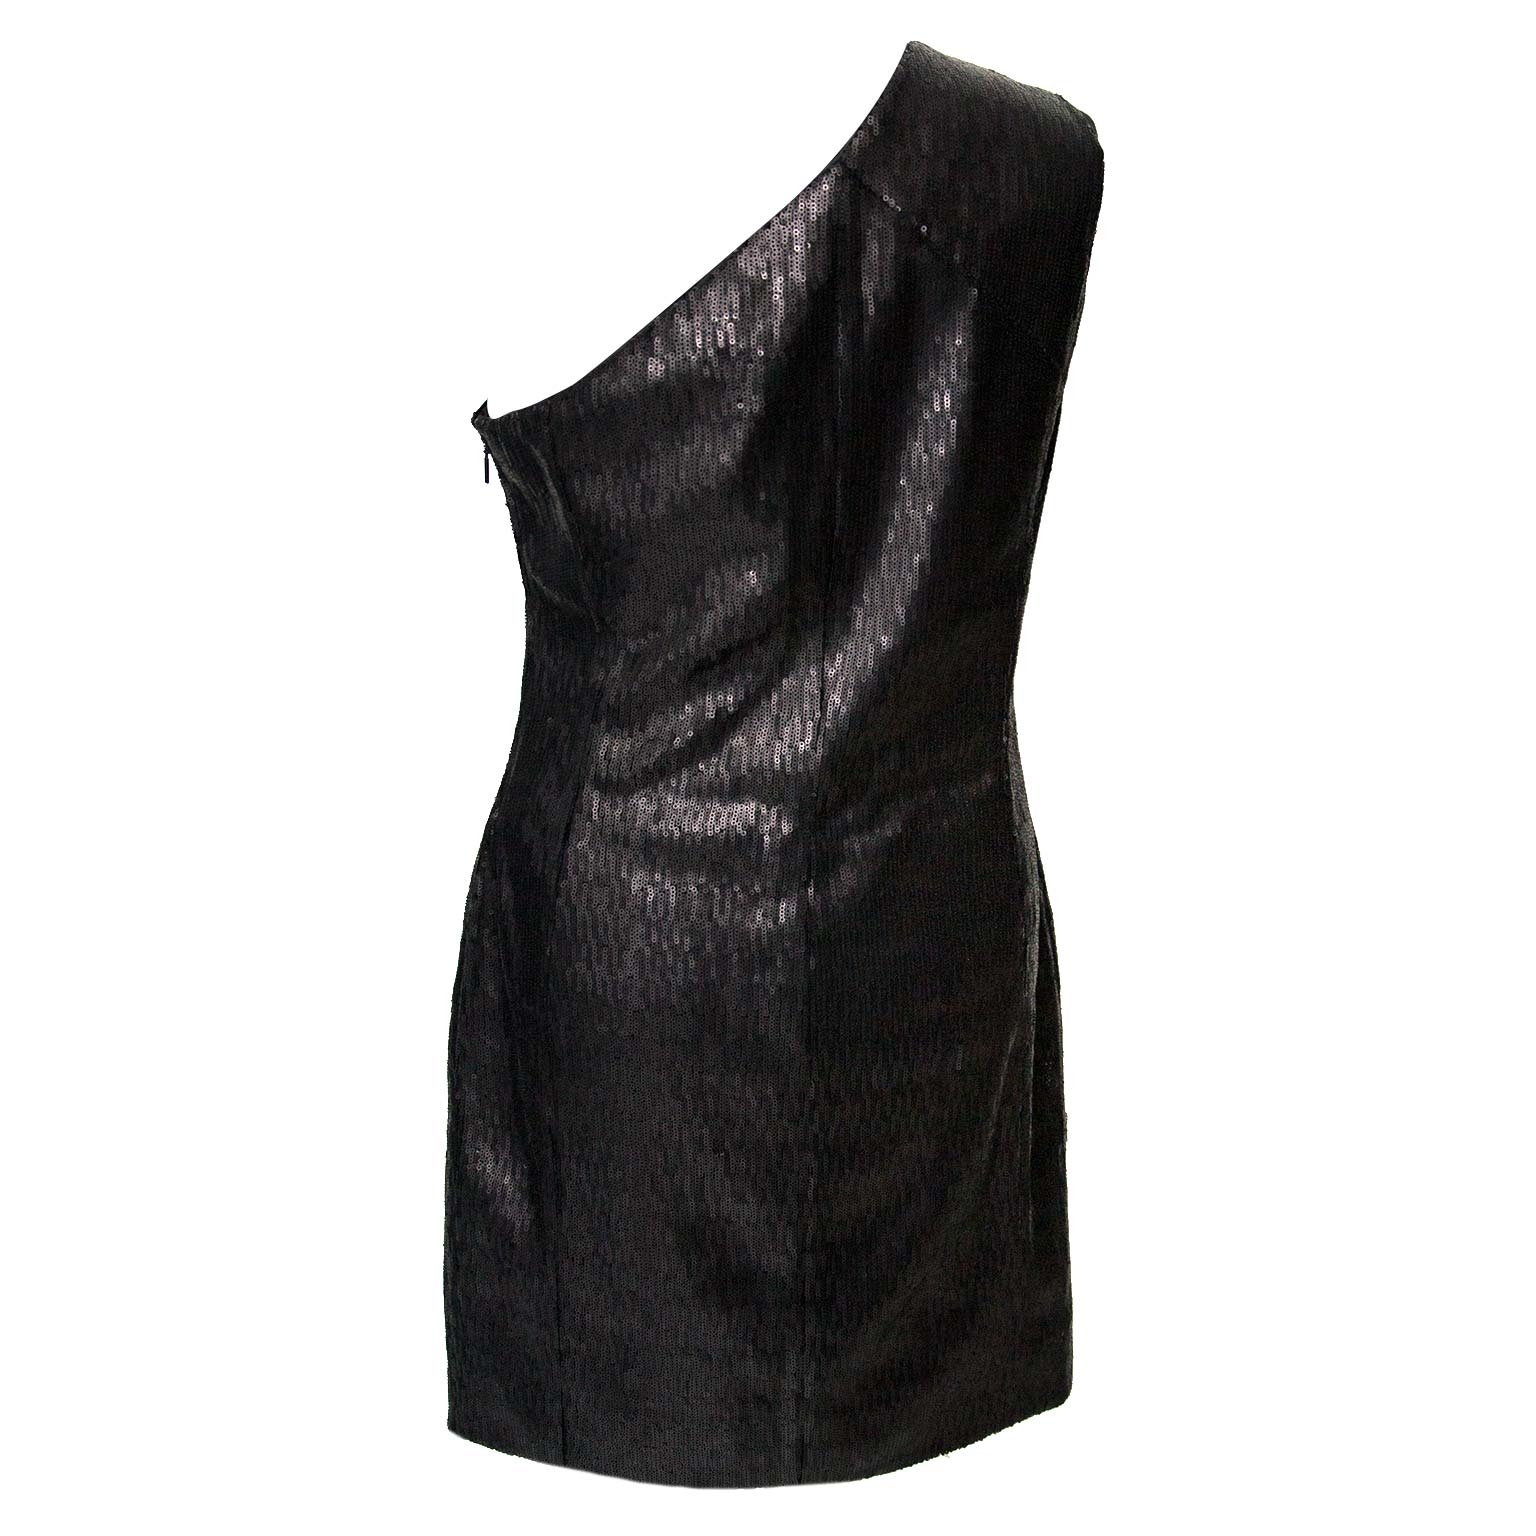 Saint Laurent Paris Black Sequin Shoulder Dress - Size 38 Buy authentic designer Saint Laurent secondhand dresses at Labellov at the best price. Safe and secure shopping. Koop tweedehands authentieke YSL jurk kleding kledij bij designer webwinkel labellov